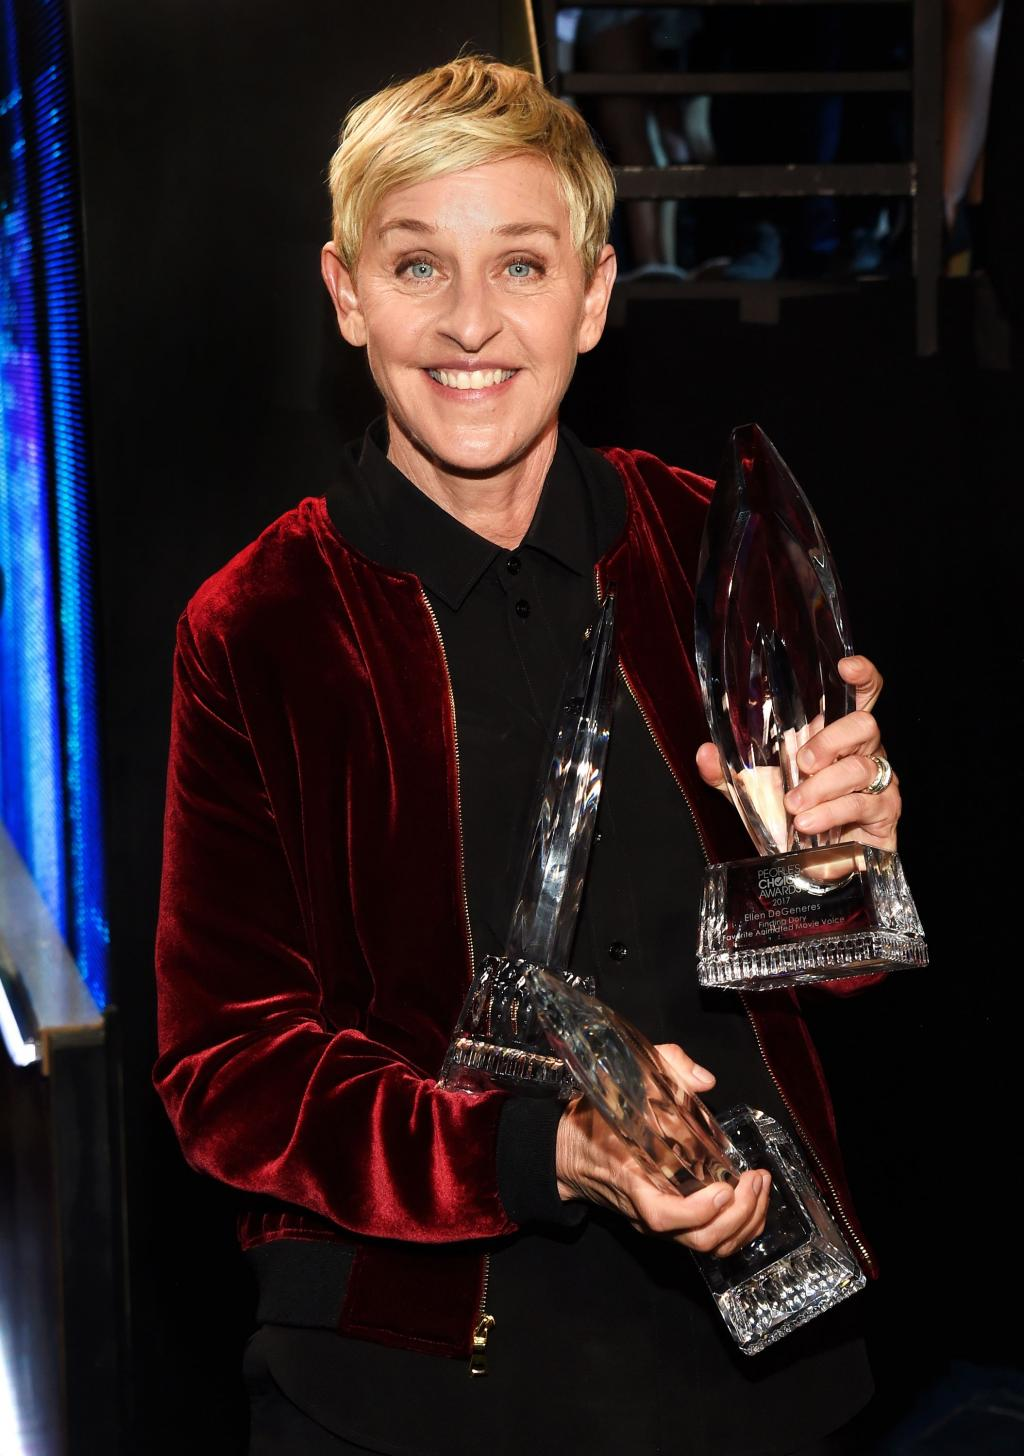 Ellen DeGeneres Makes History with 20th People's Choice Award: 'Thank You All Very Much. I Love You'